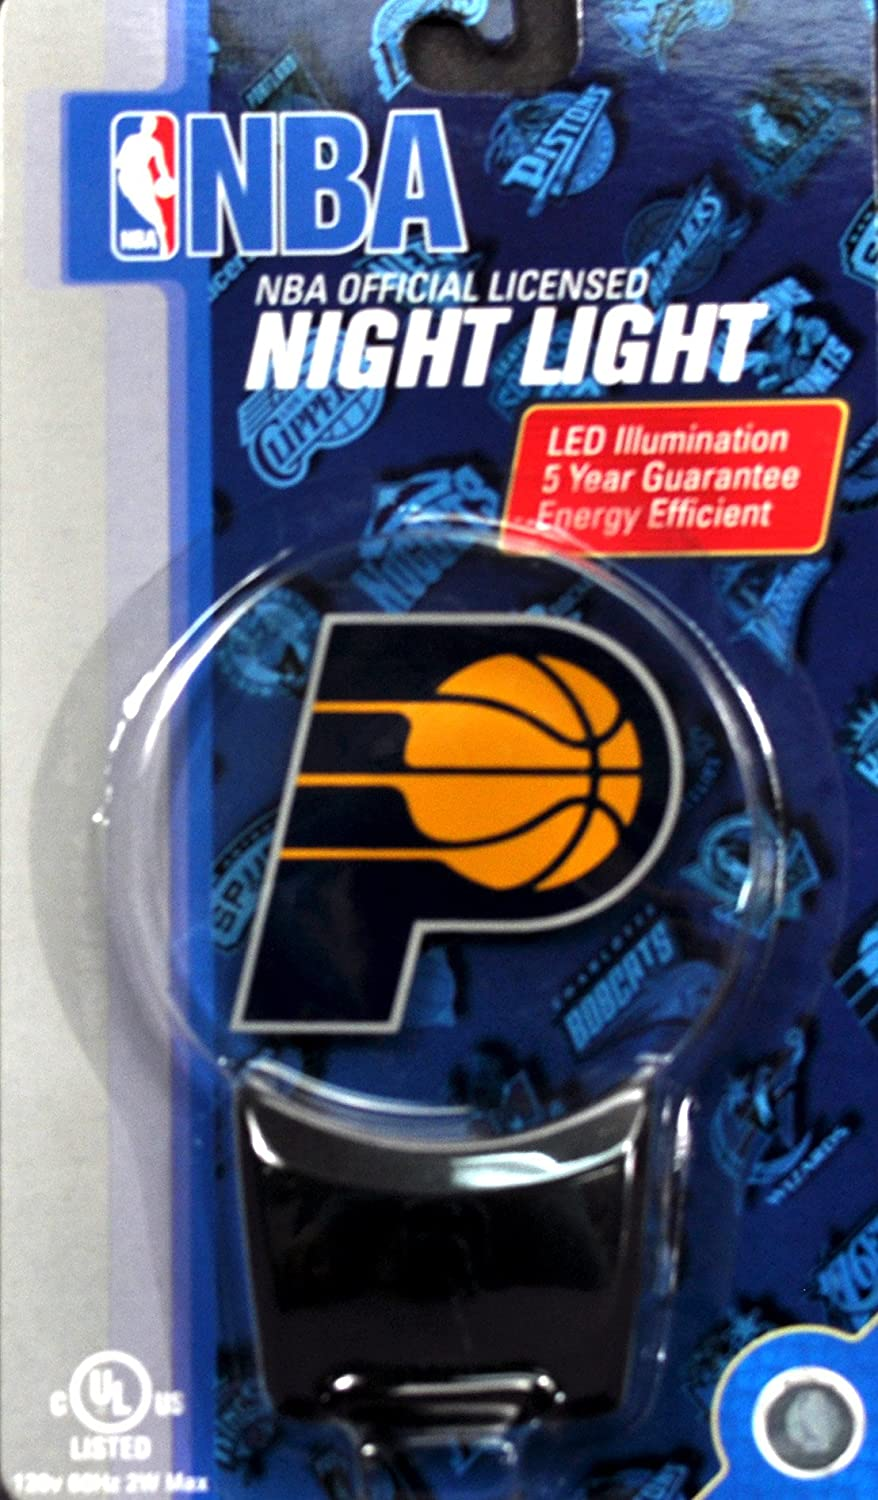 Authentic Street Signs NBA Officially Licensed-LED Night Light-Super Energy Efficient-Prime Power Saving 0.5 watt-Plug in-Great Sports Fan Gift for Adults-Babies-Kids Room (Indiana Pacers)